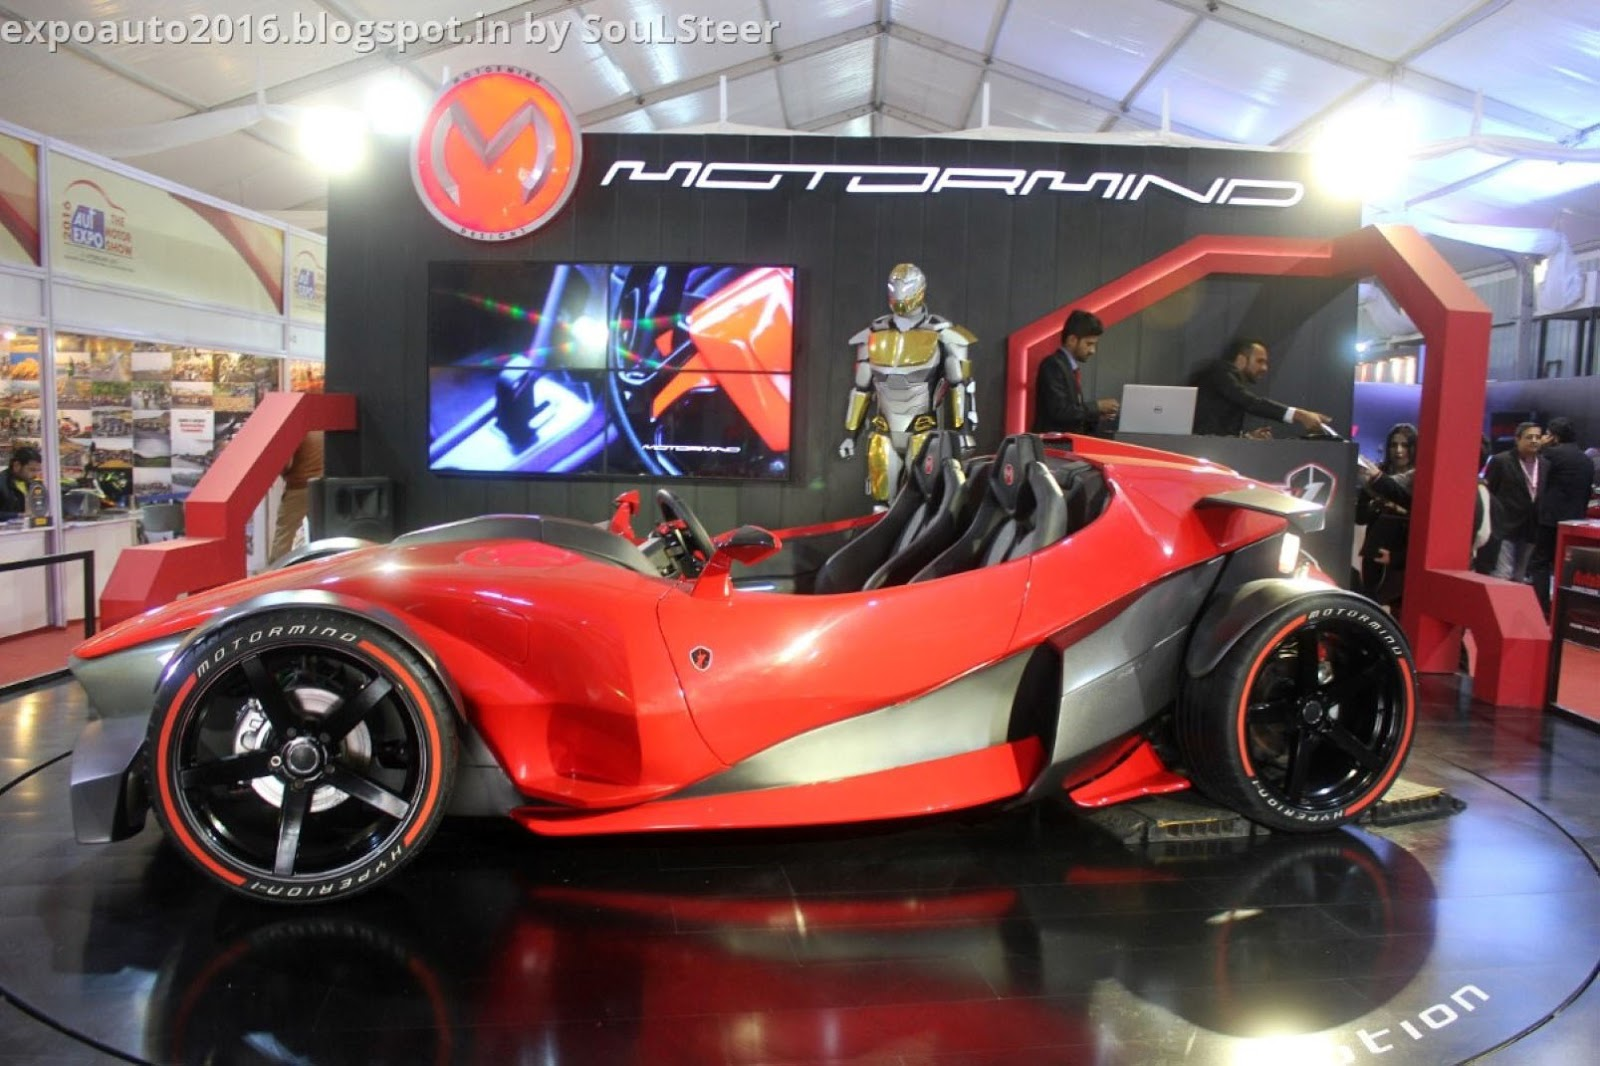 auto expo 2016soulsteer: motormind hyperion 1 sports car concept